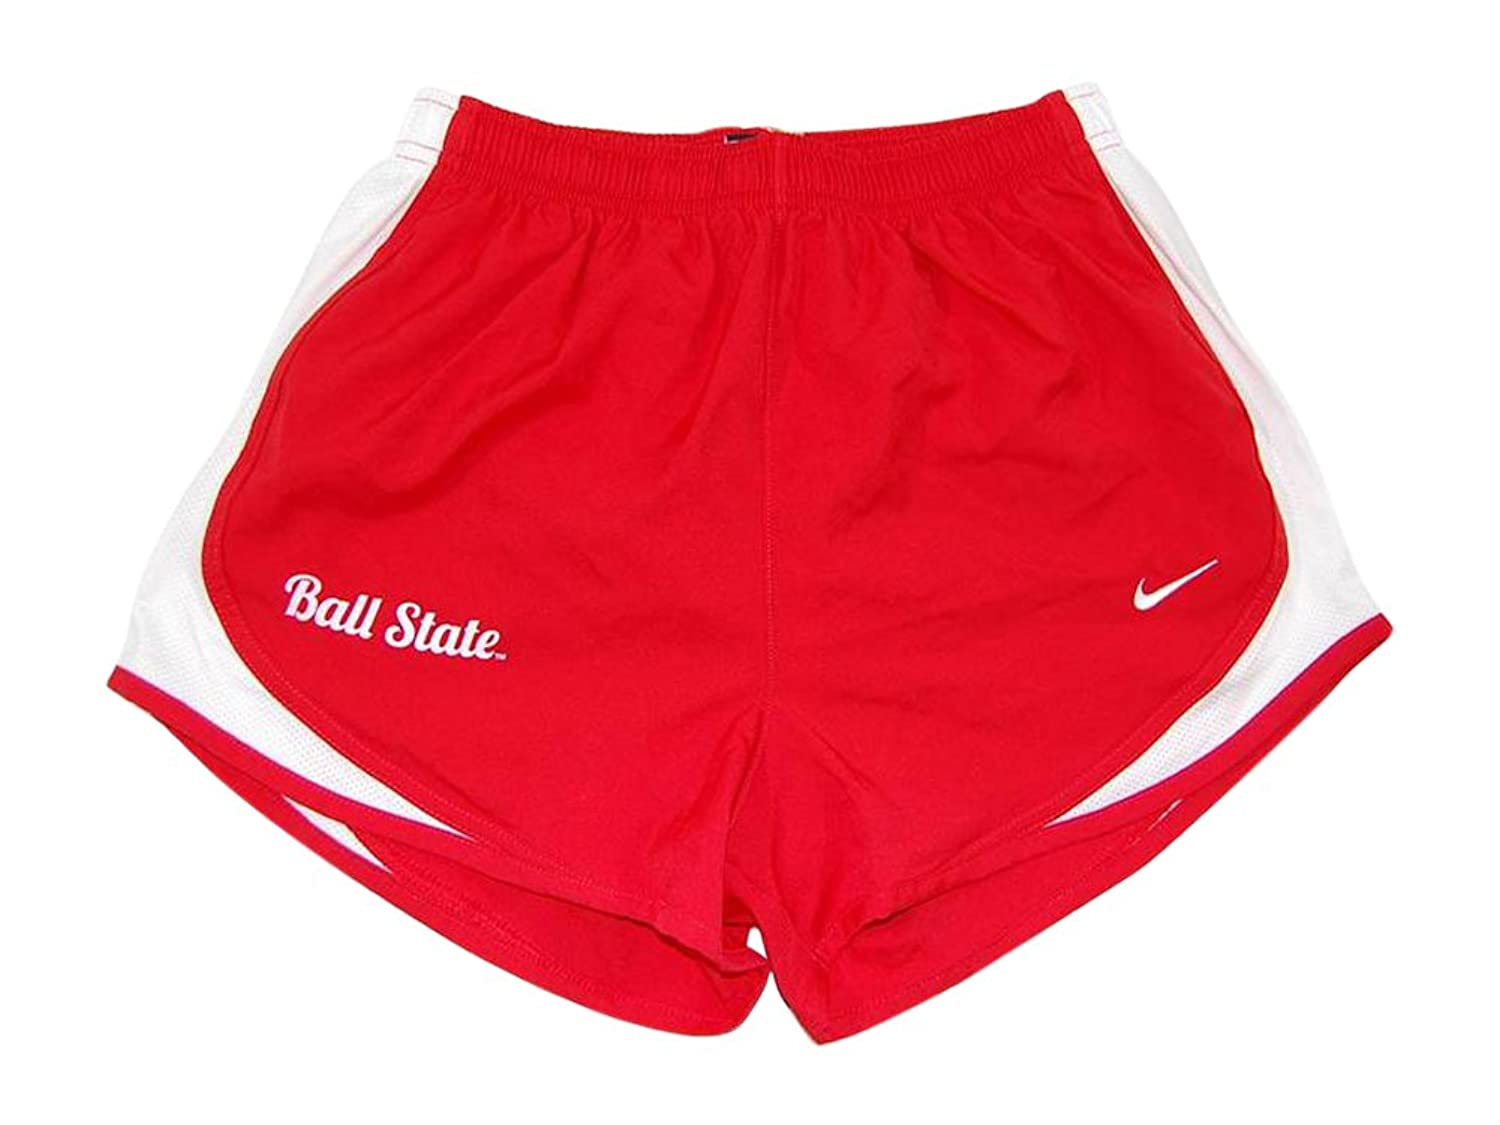 Nike womens running shorts with liner - Nike Womens 3 Race Shorts